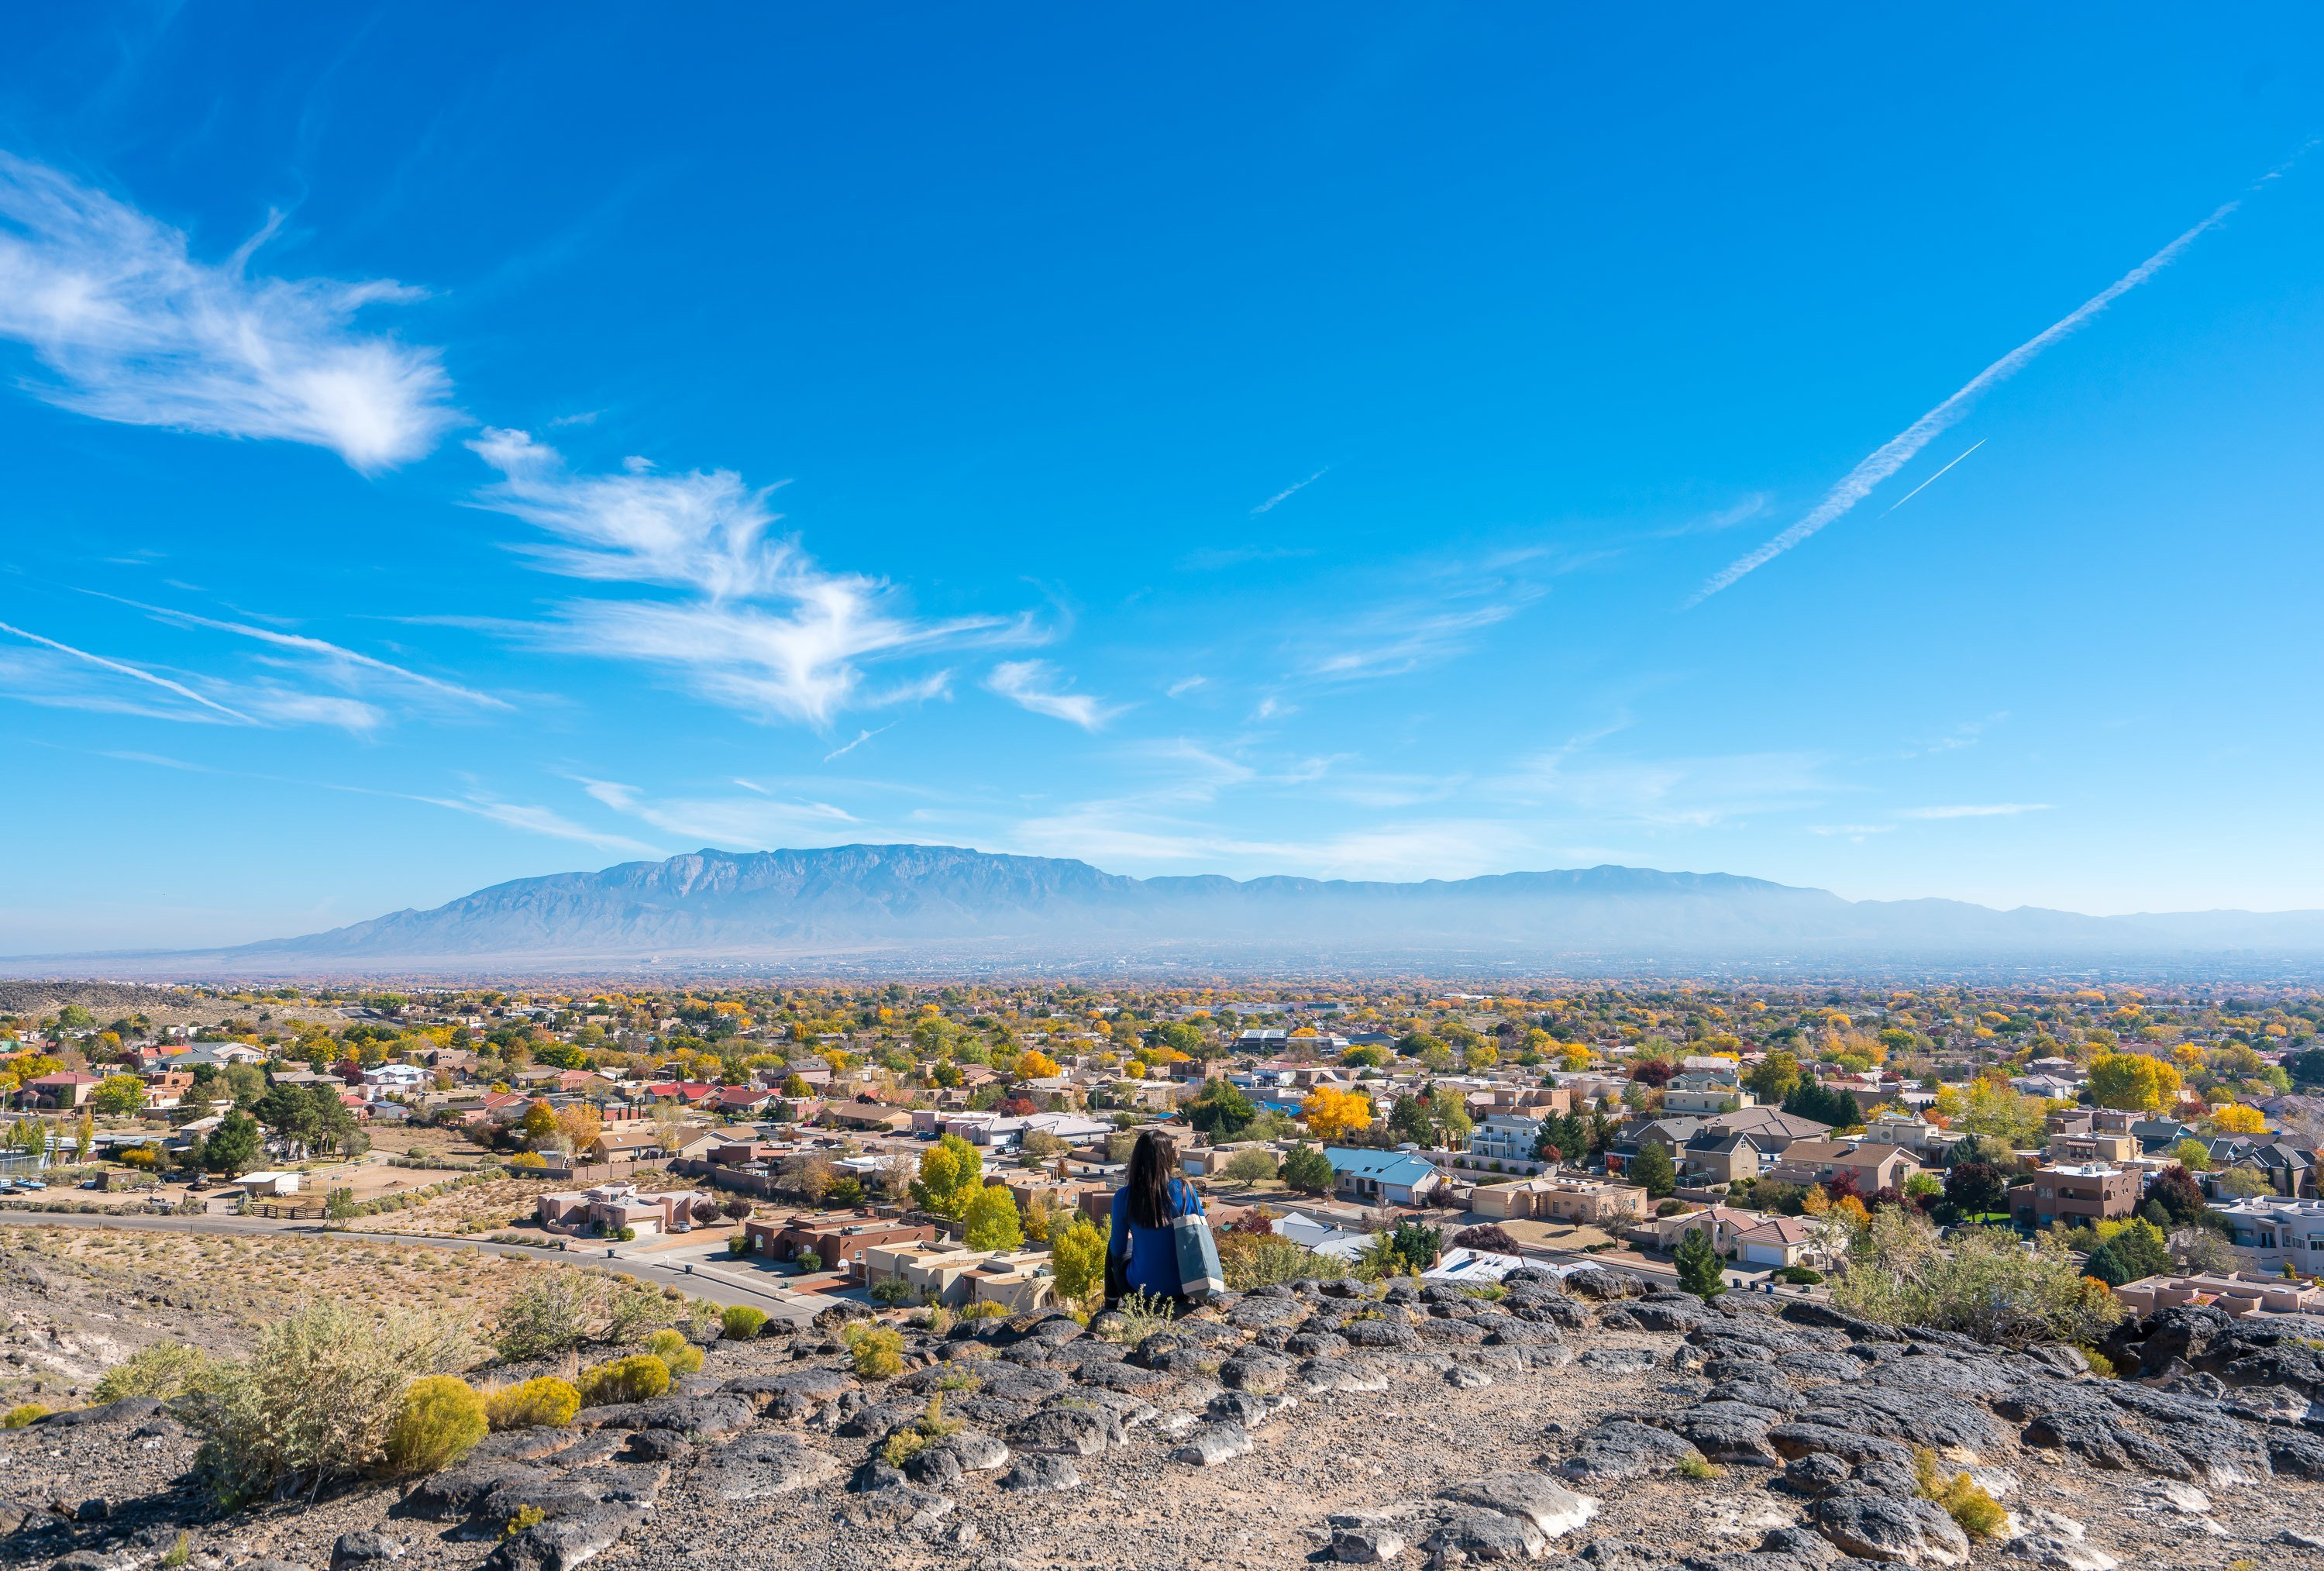 Things To Do In Albuquerque Albuquerque Attractions